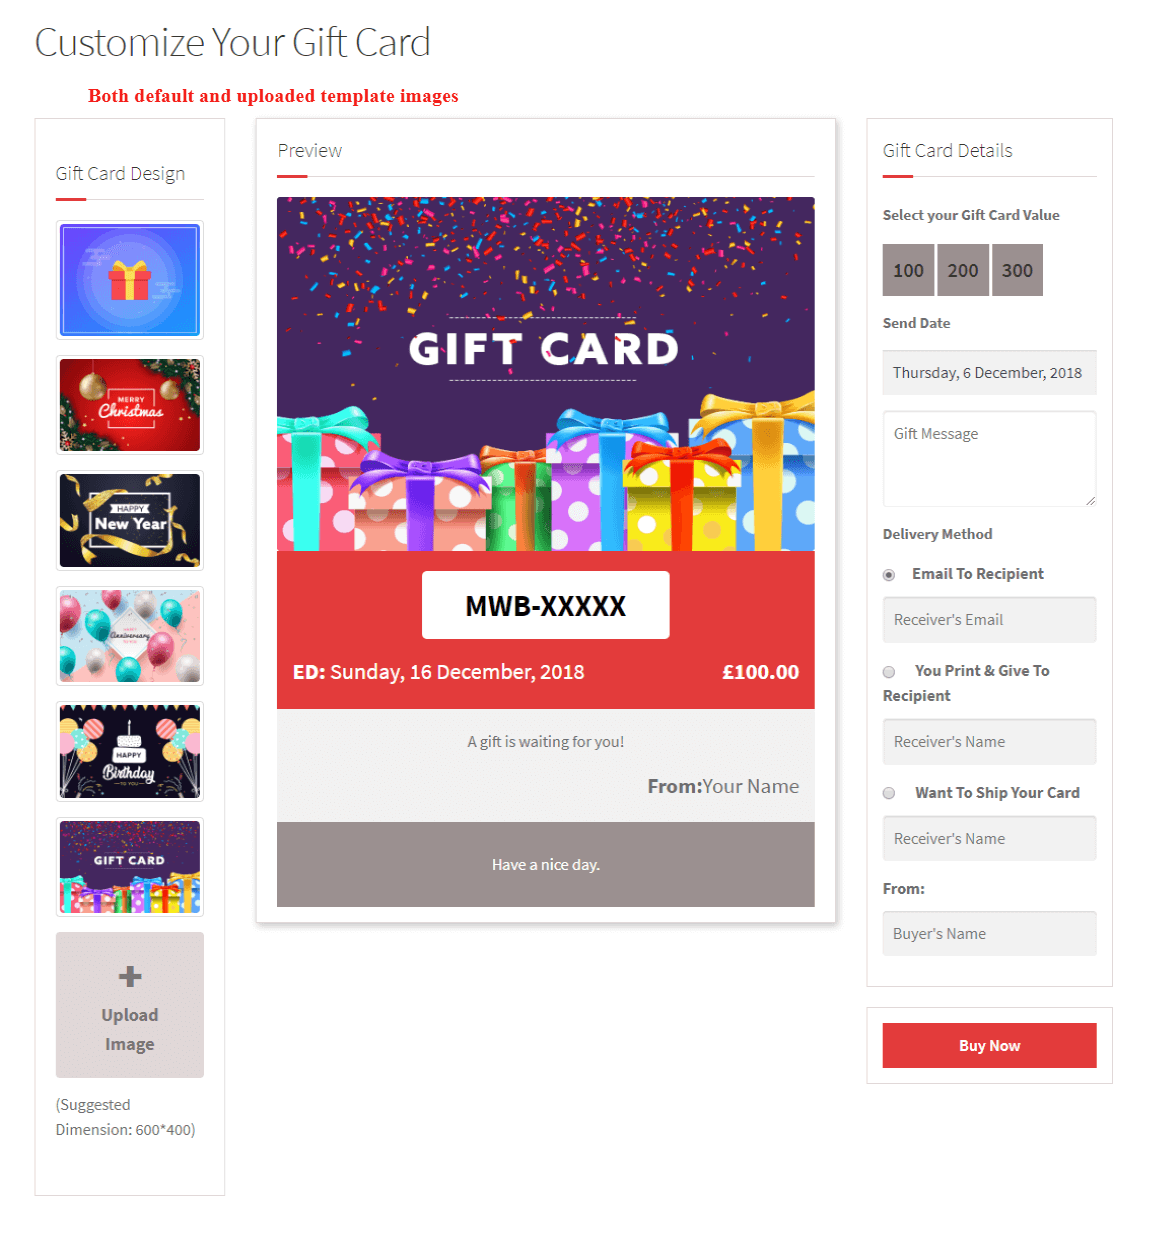 woocommerce-customizable-gift-card-updated-template-and-uploaded-images-frontend